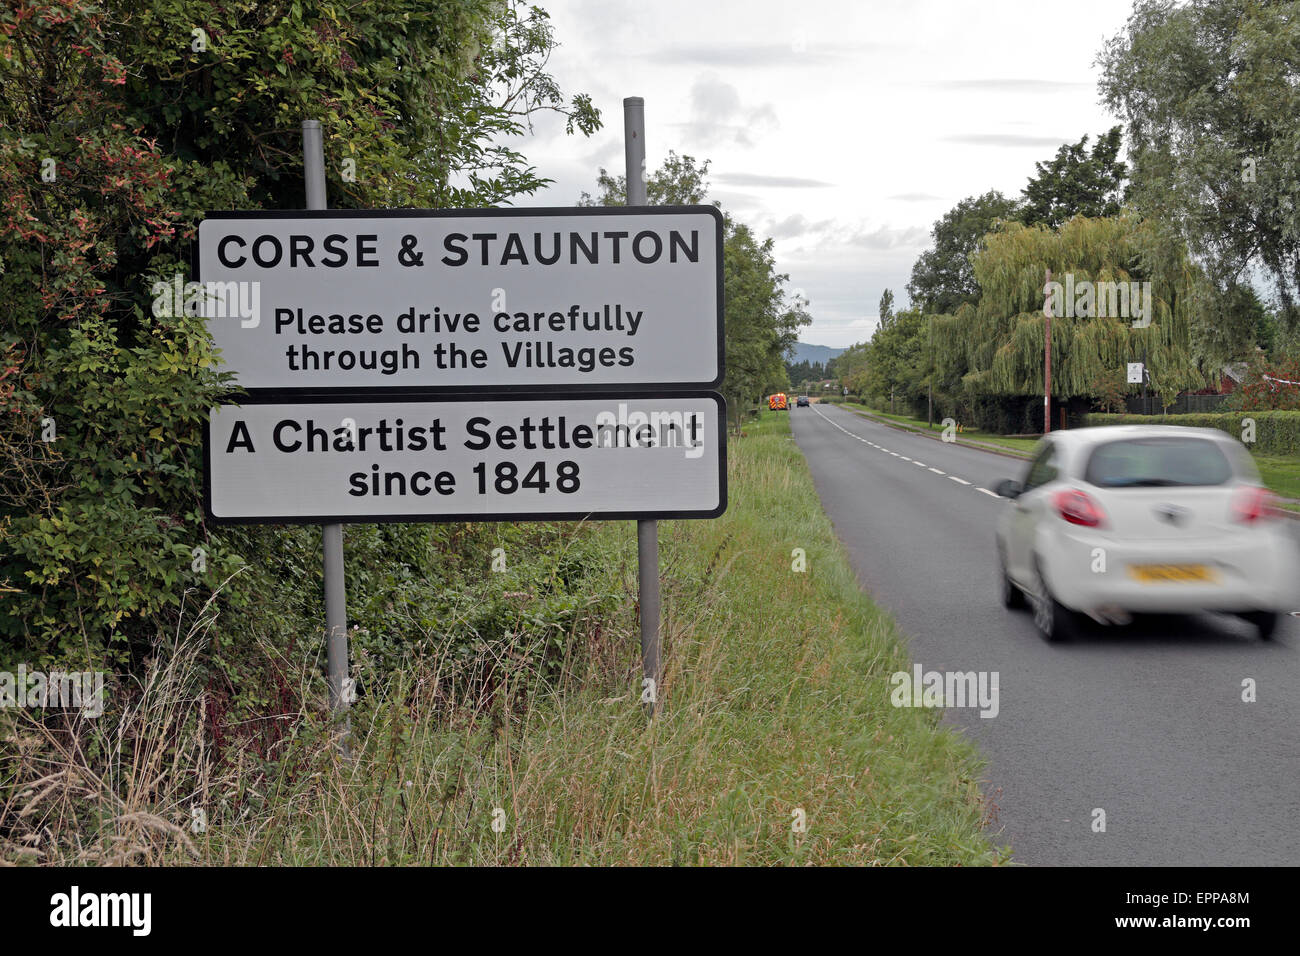 Road sign at the entrance to the villages of Corse & Staunton, Chartist settlements since 1848, Gloucestershire, - Stock Image